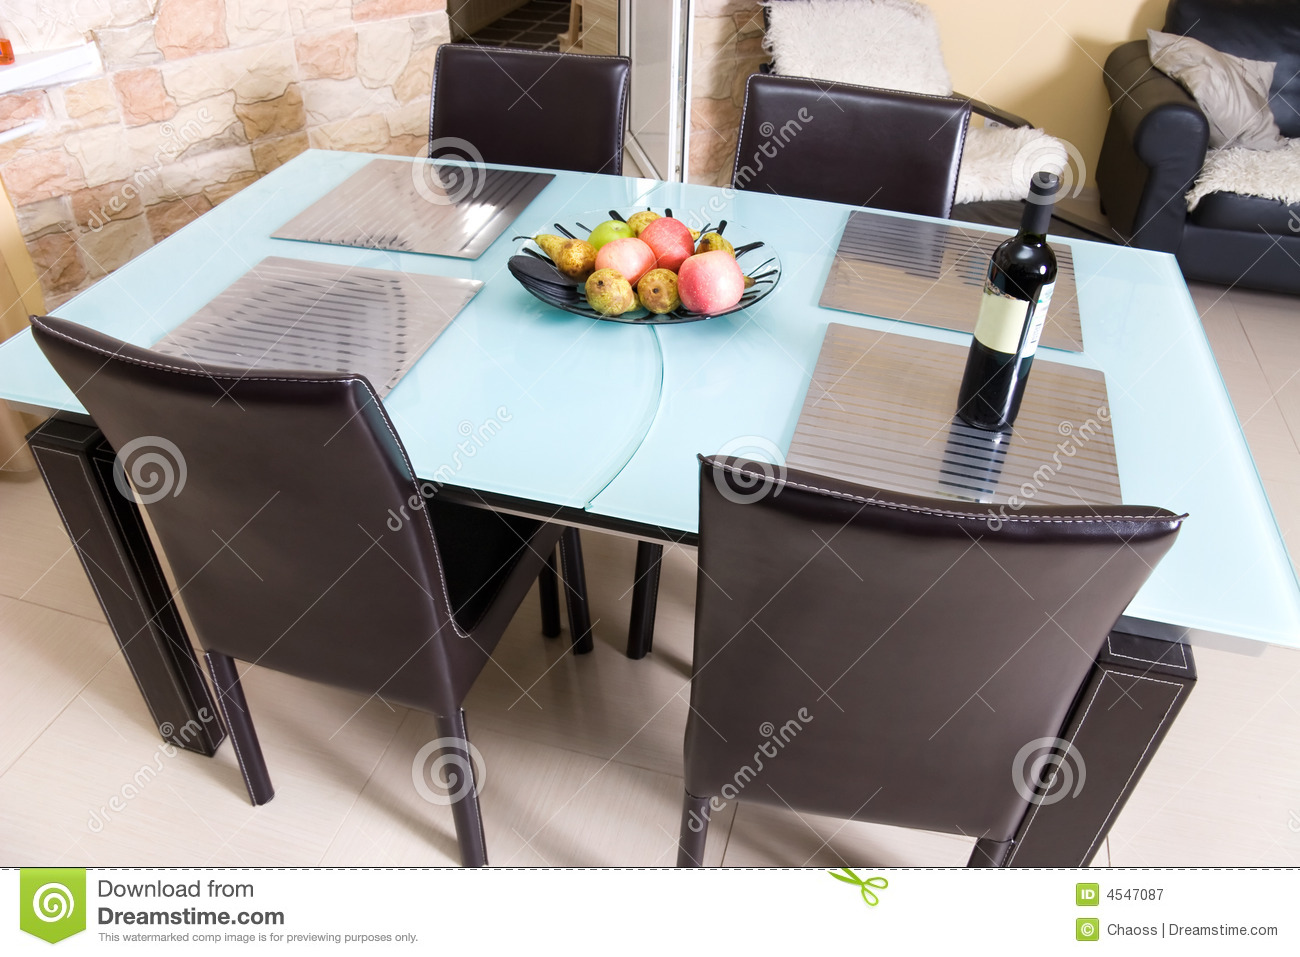 table de cuisine moderne avec des fruits un vin photographie stock libre de droits image 4547087. Black Bedroom Furniture Sets. Home Design Ideas